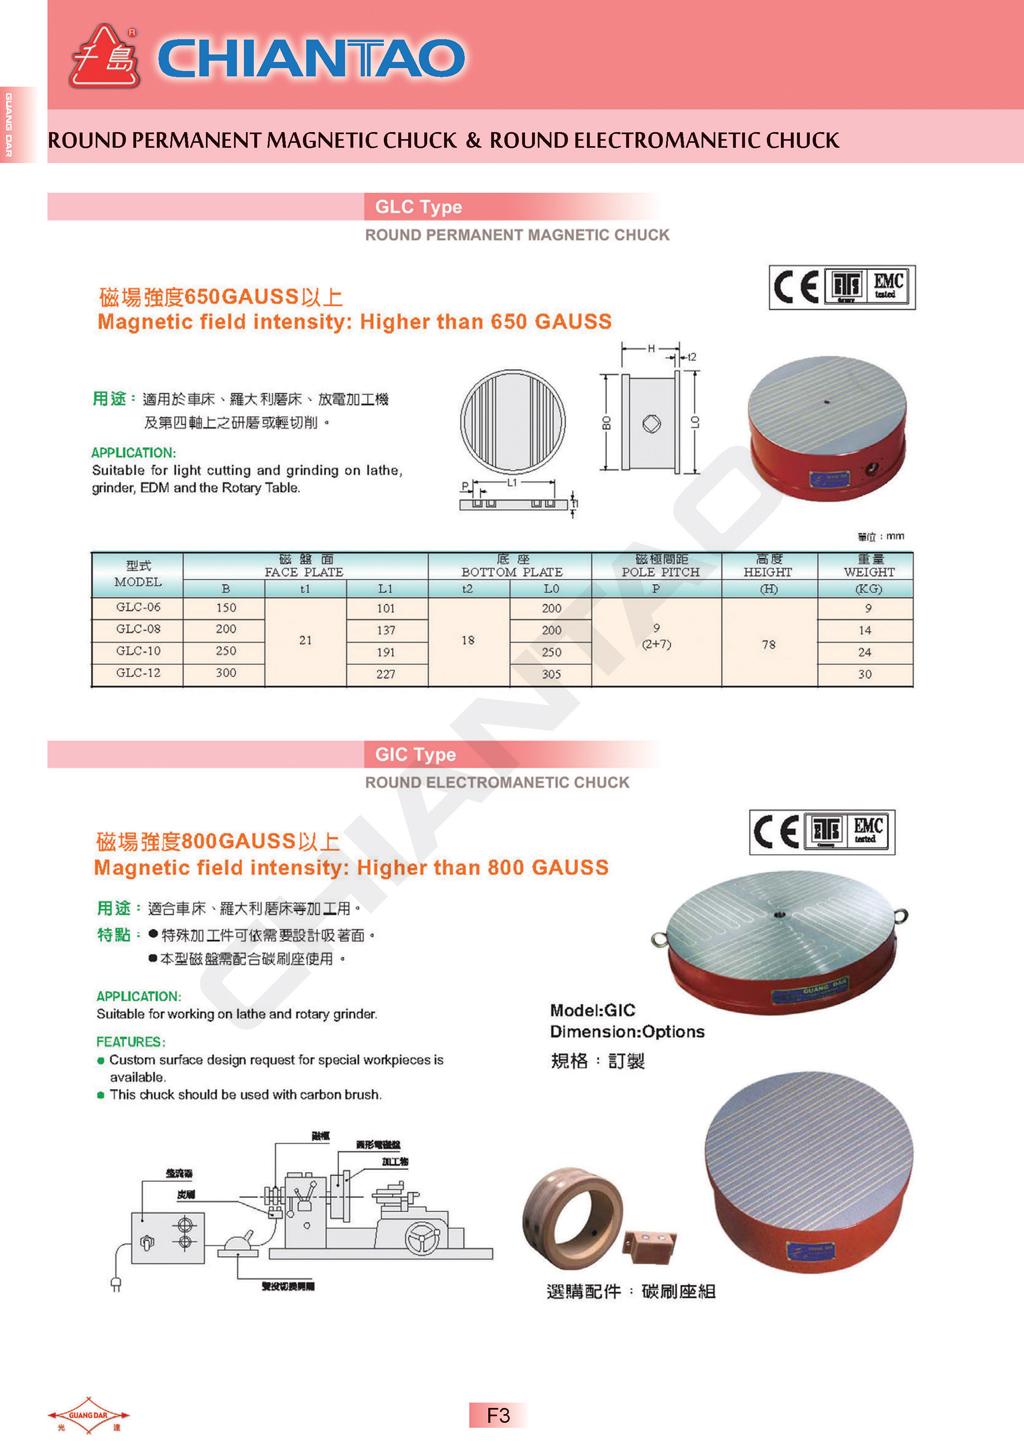 Page: F3 · GIC Type Round electromanetic chuck